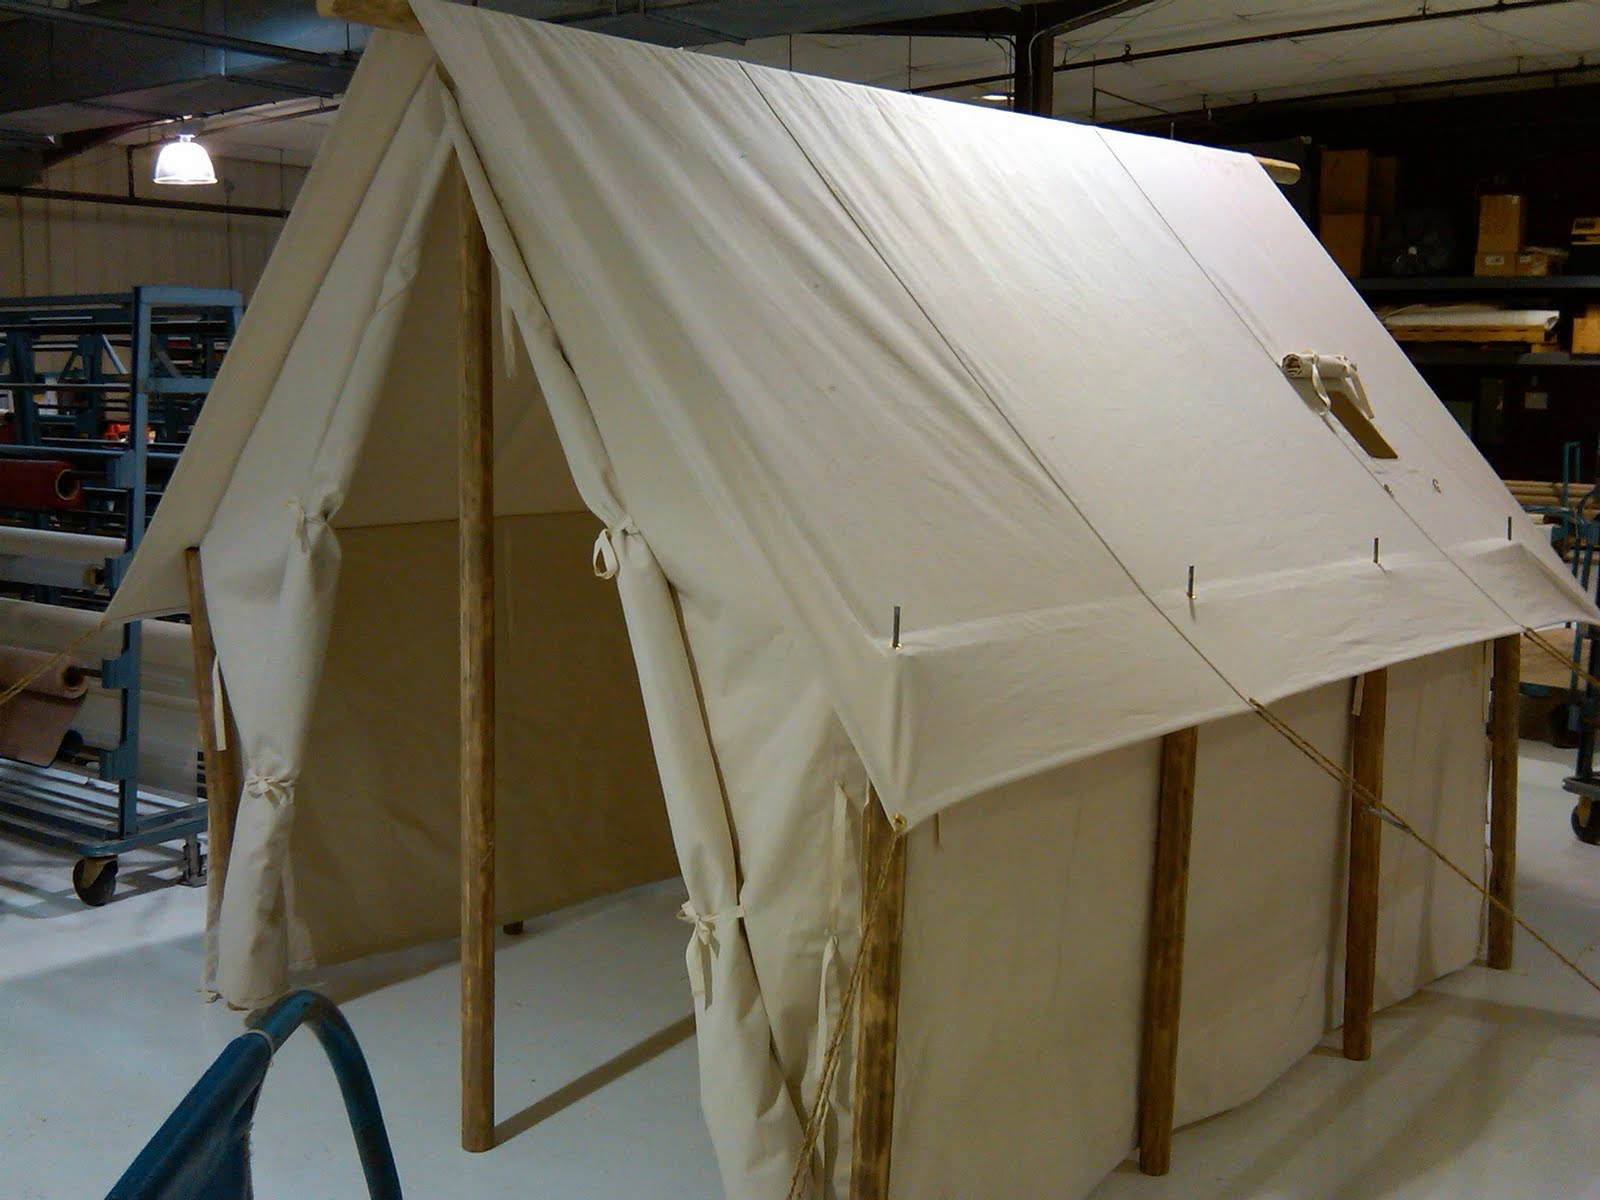 Recently Armbruster had a customer contact us with a specific request. He wanted a turn of the century Outfitter style tent designed to fit within a lodge. & Custom Outfitter Tent for Store Display | Armbruster Tent Maker